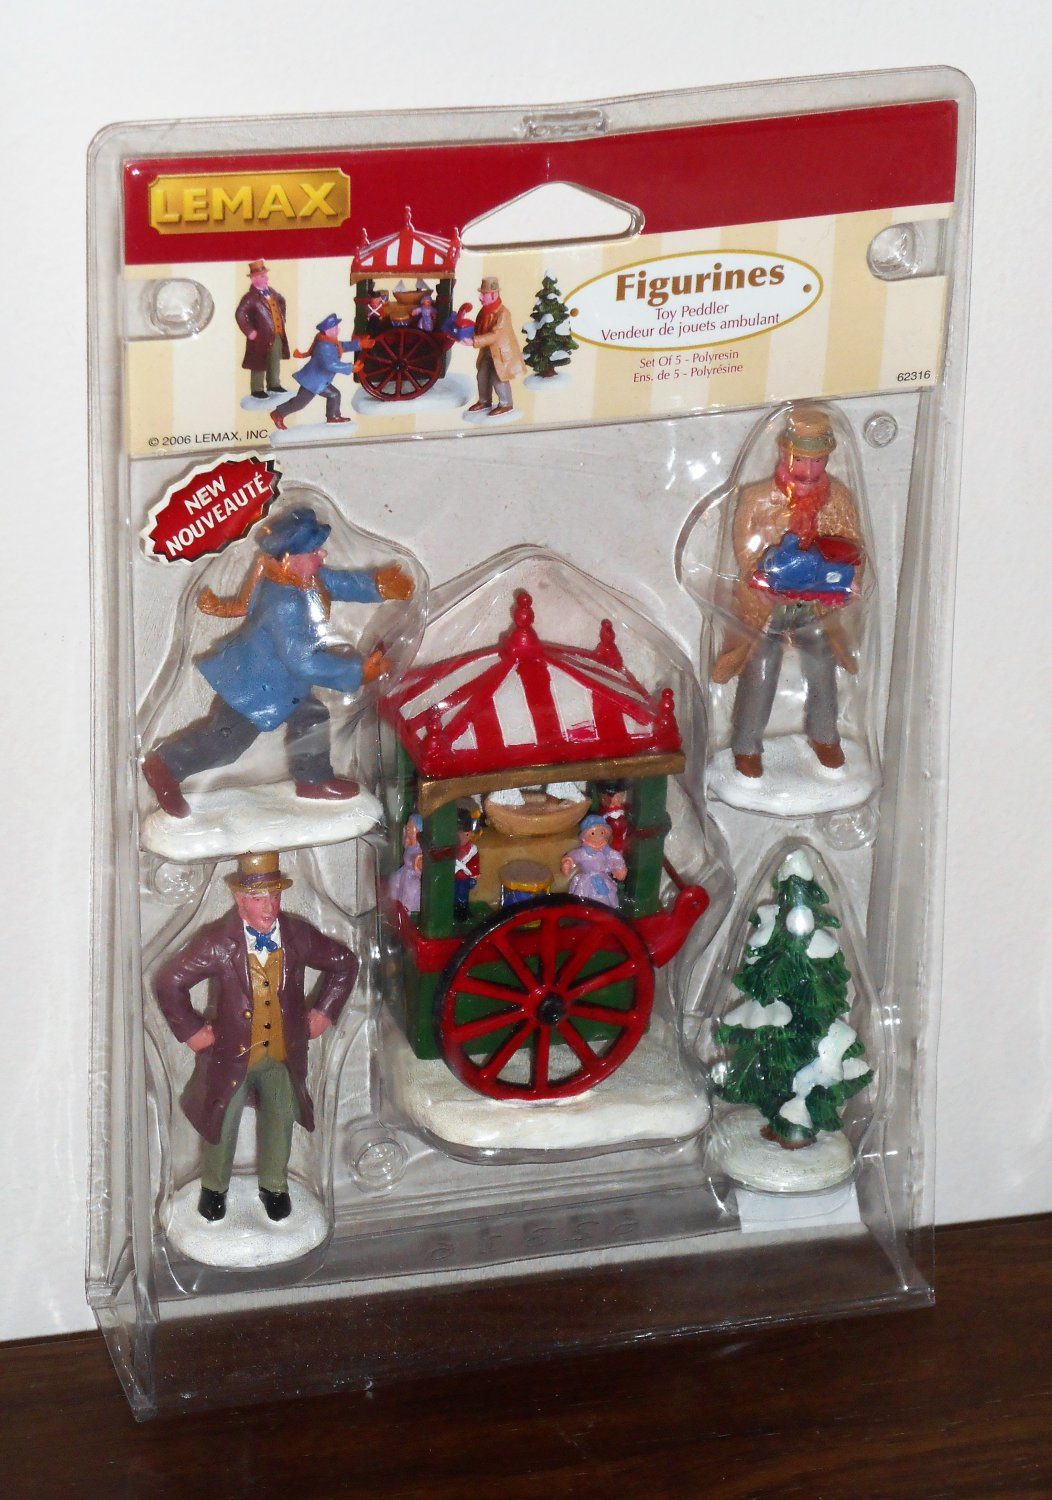 Lemax Christmas Village Collection Figurines 62316 Toy Peddler Set of 5 2006 NIB